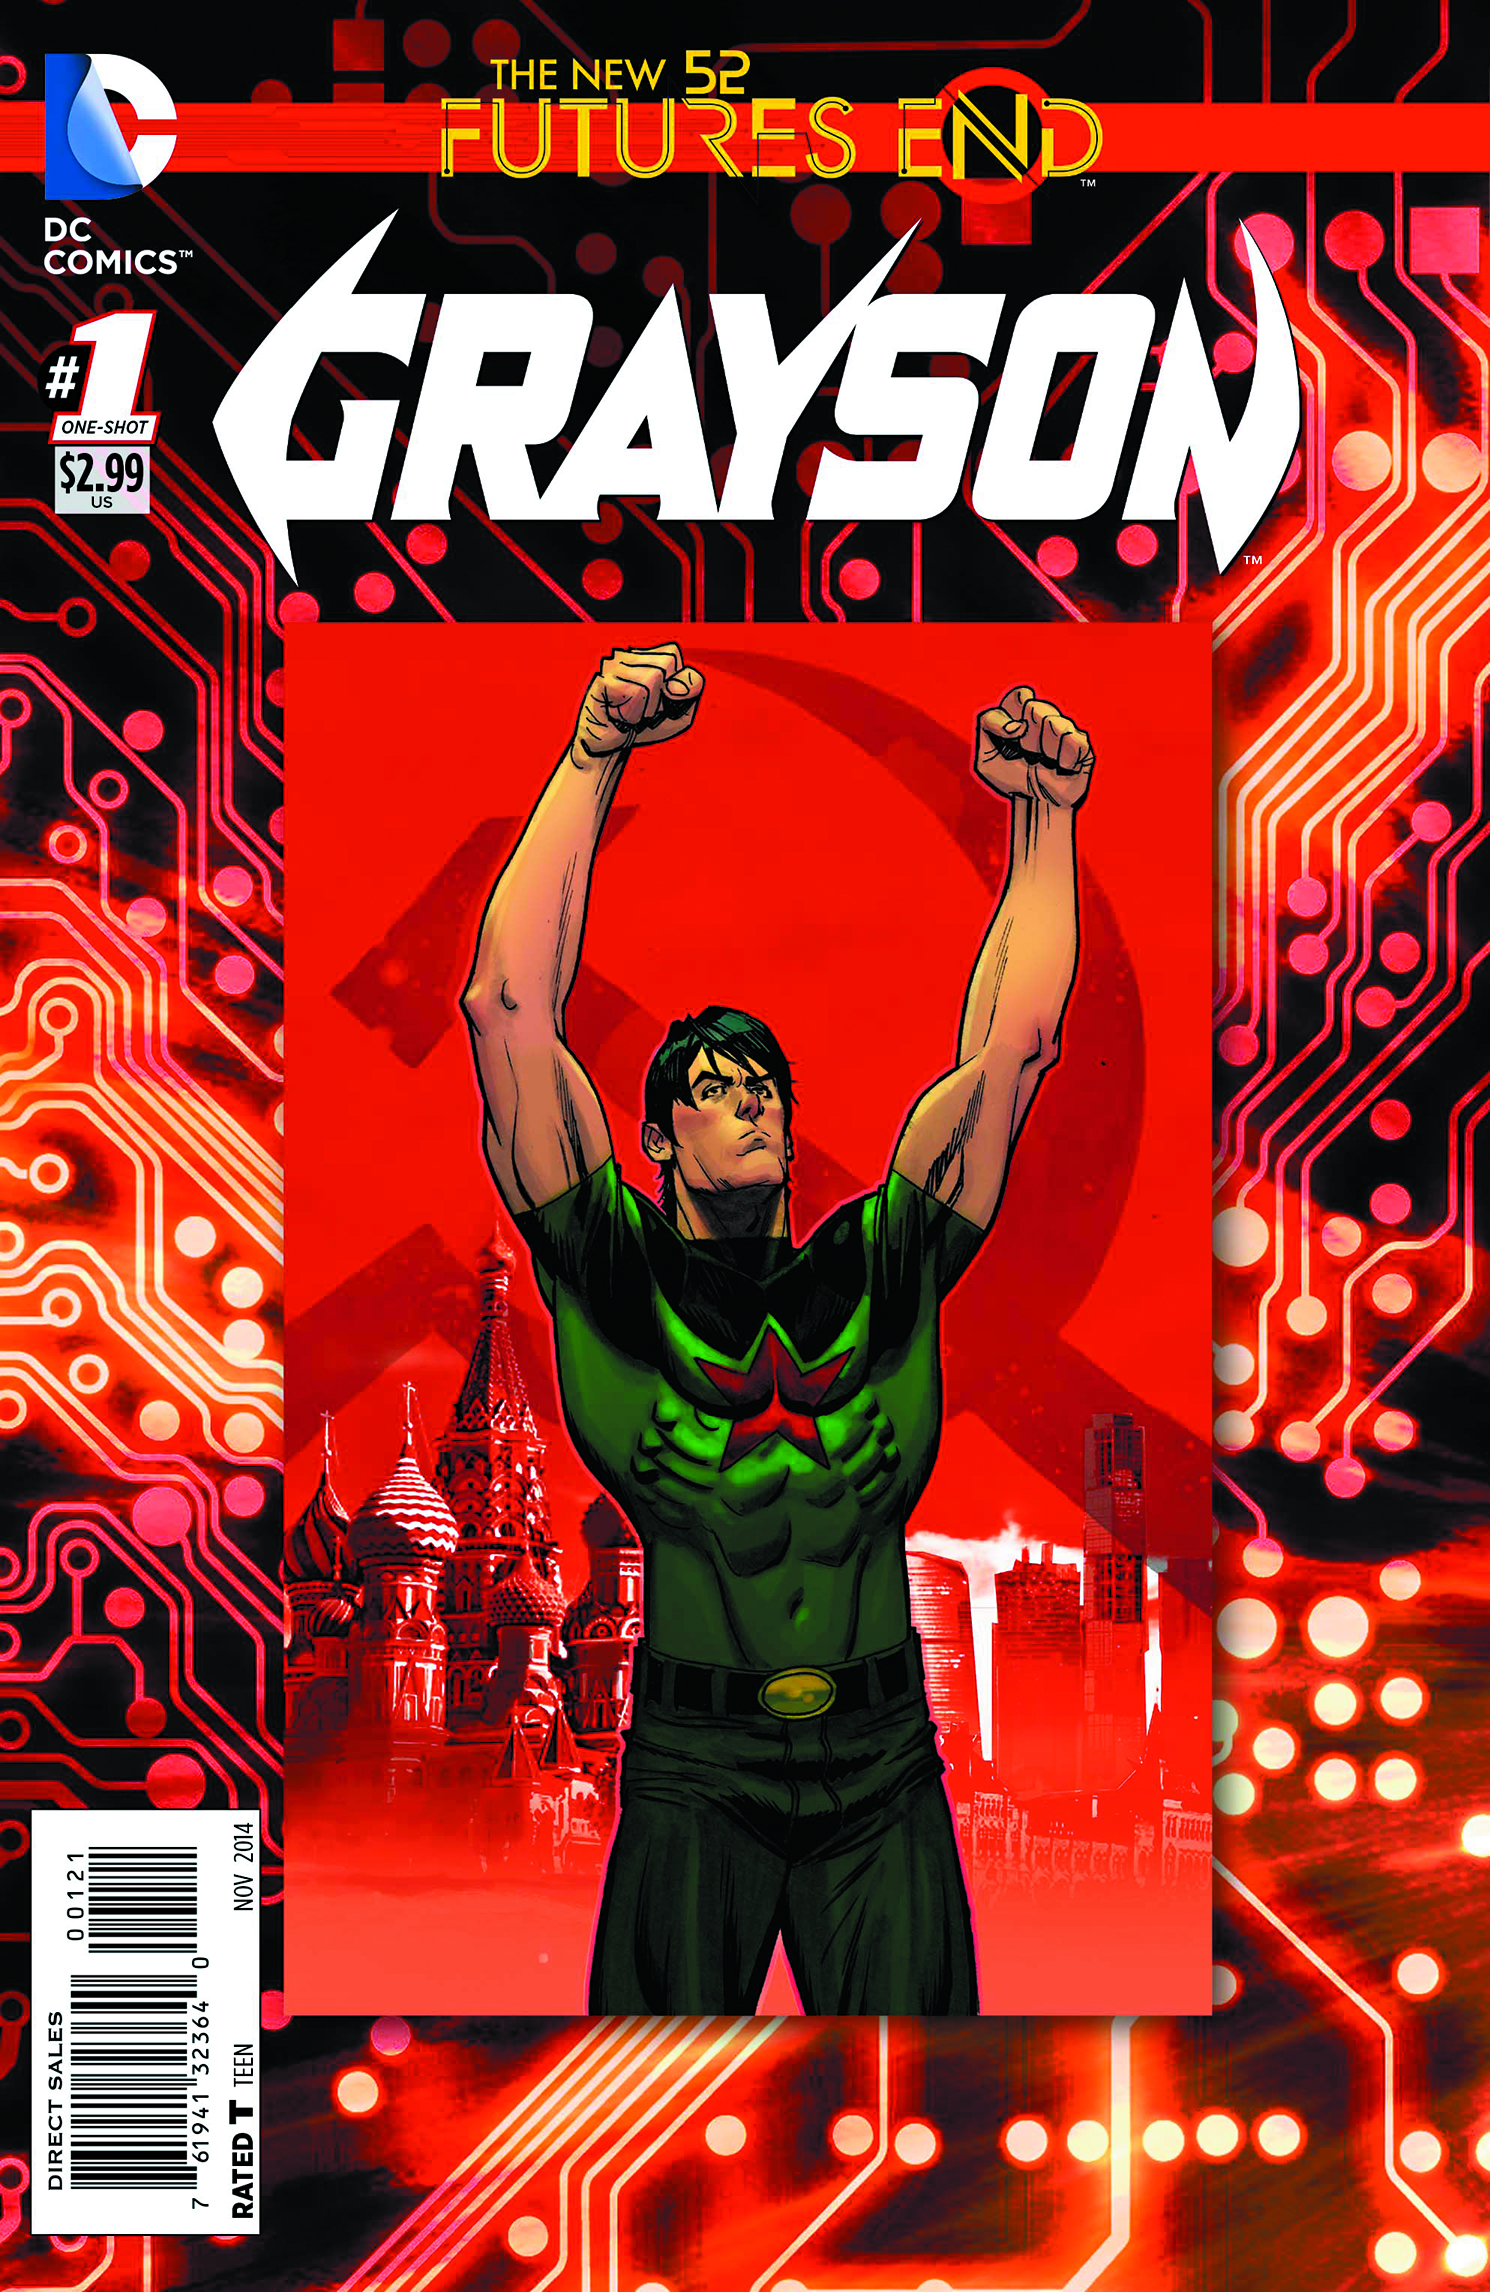 GRAYSON FUTURES END #1 STANDARD ED